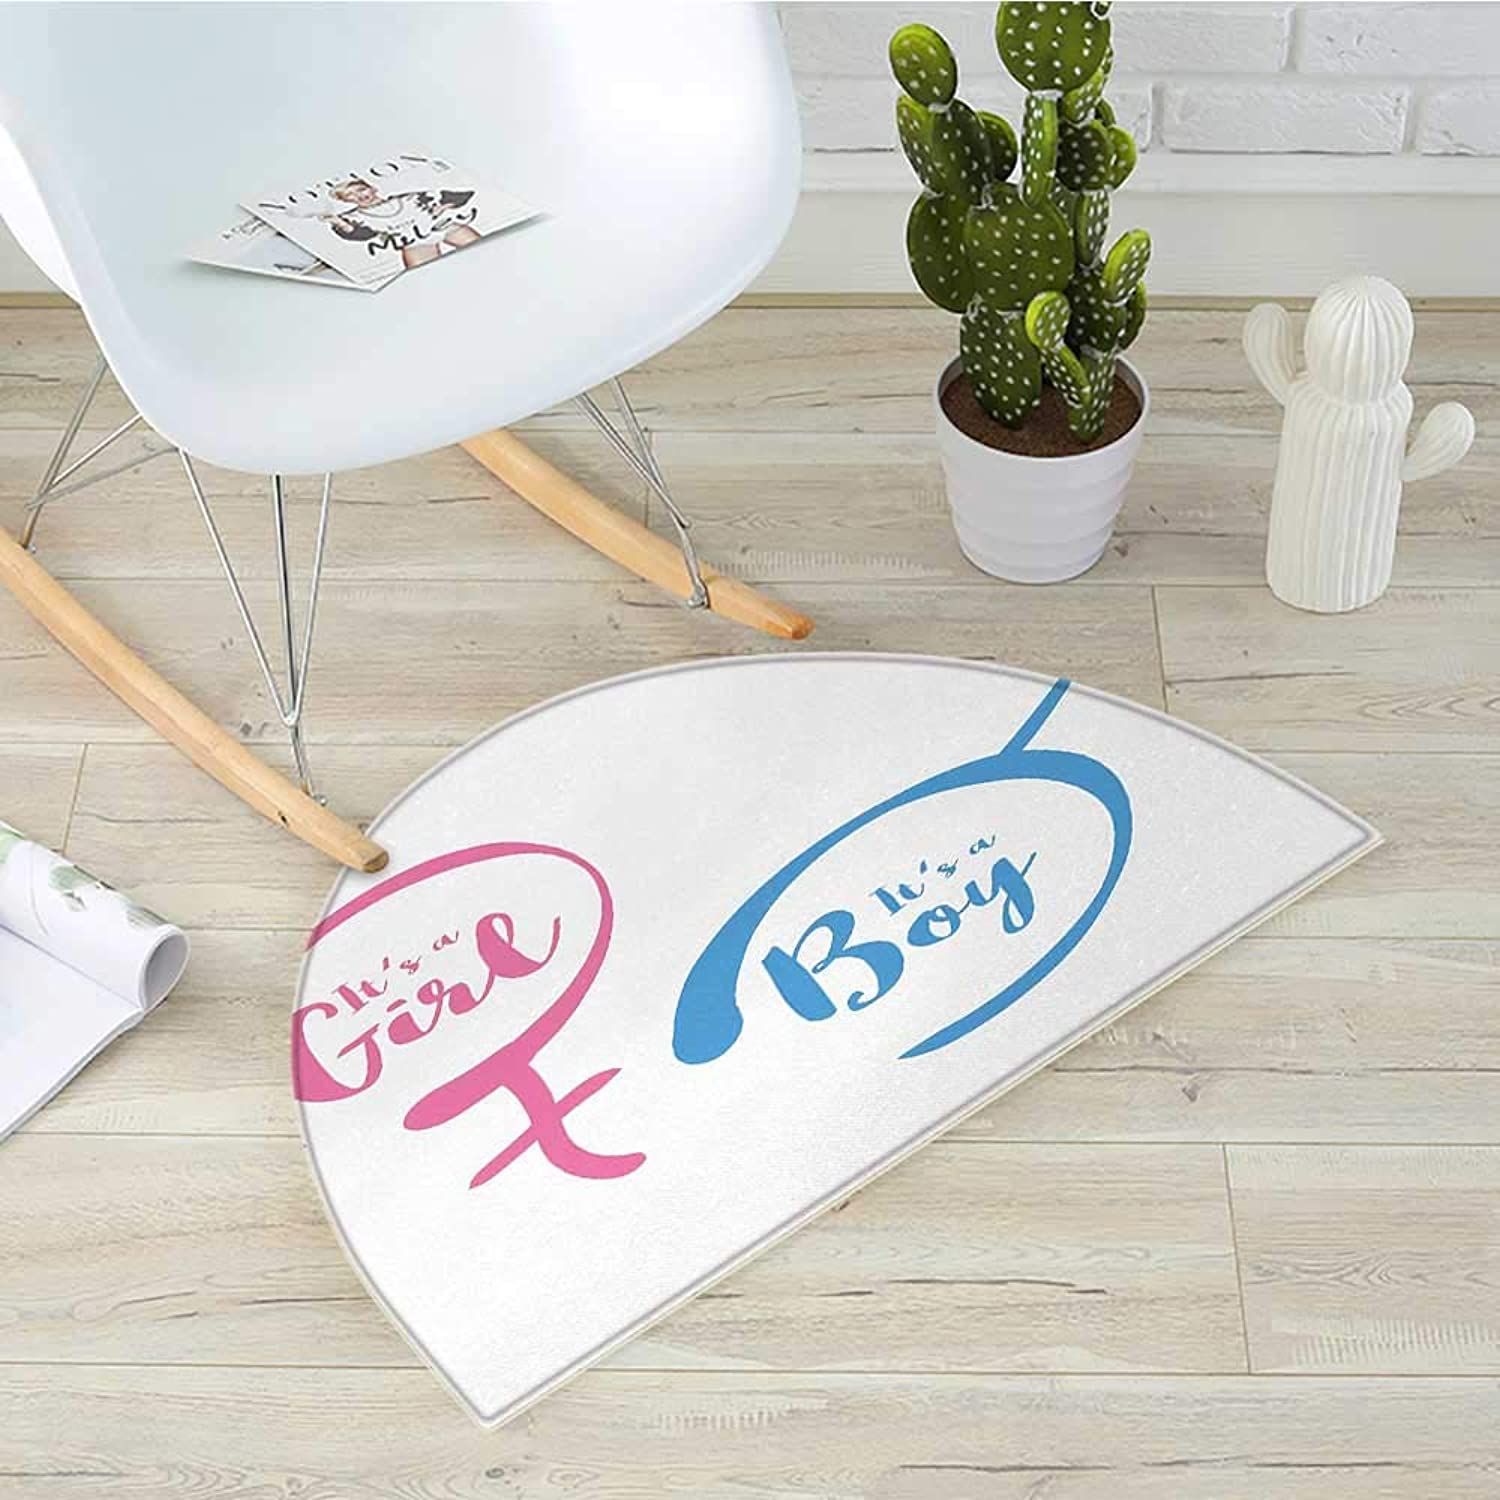 Gender Reveal Semicircular CushionText with Boy and Girl Gender Sign Simplistic Announcement Print Entry Door Mat H 35.4  xD 53.1  Pale Pink and bluee